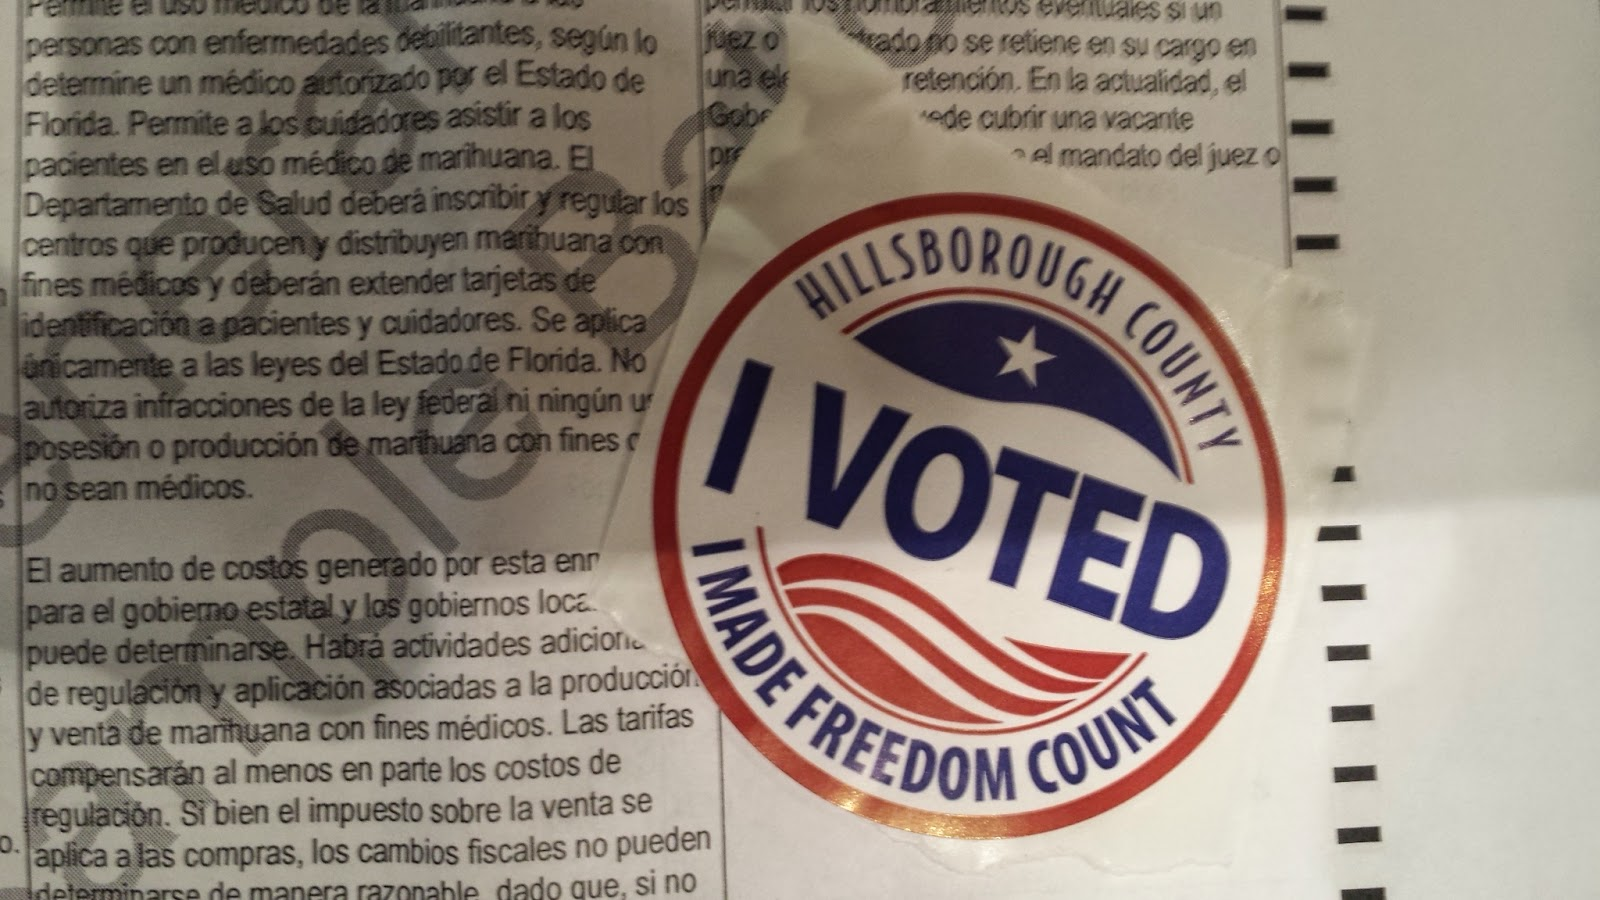 Early Voting started today in Hillsborough County, FL